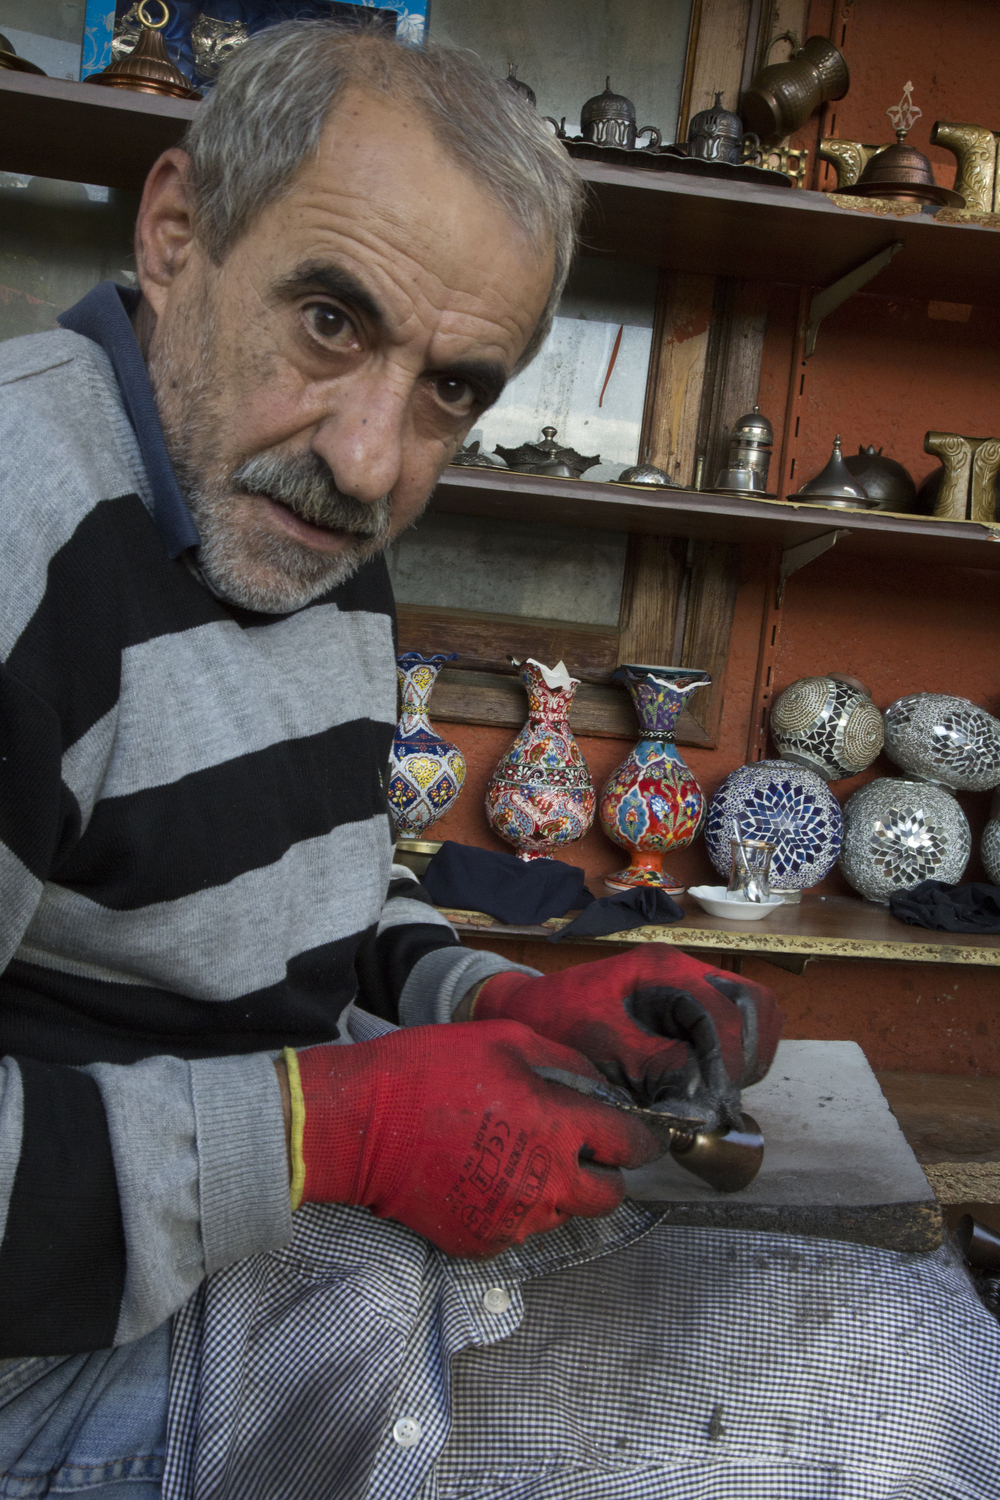 Craft worker, Grand Bazaar, Istanbul